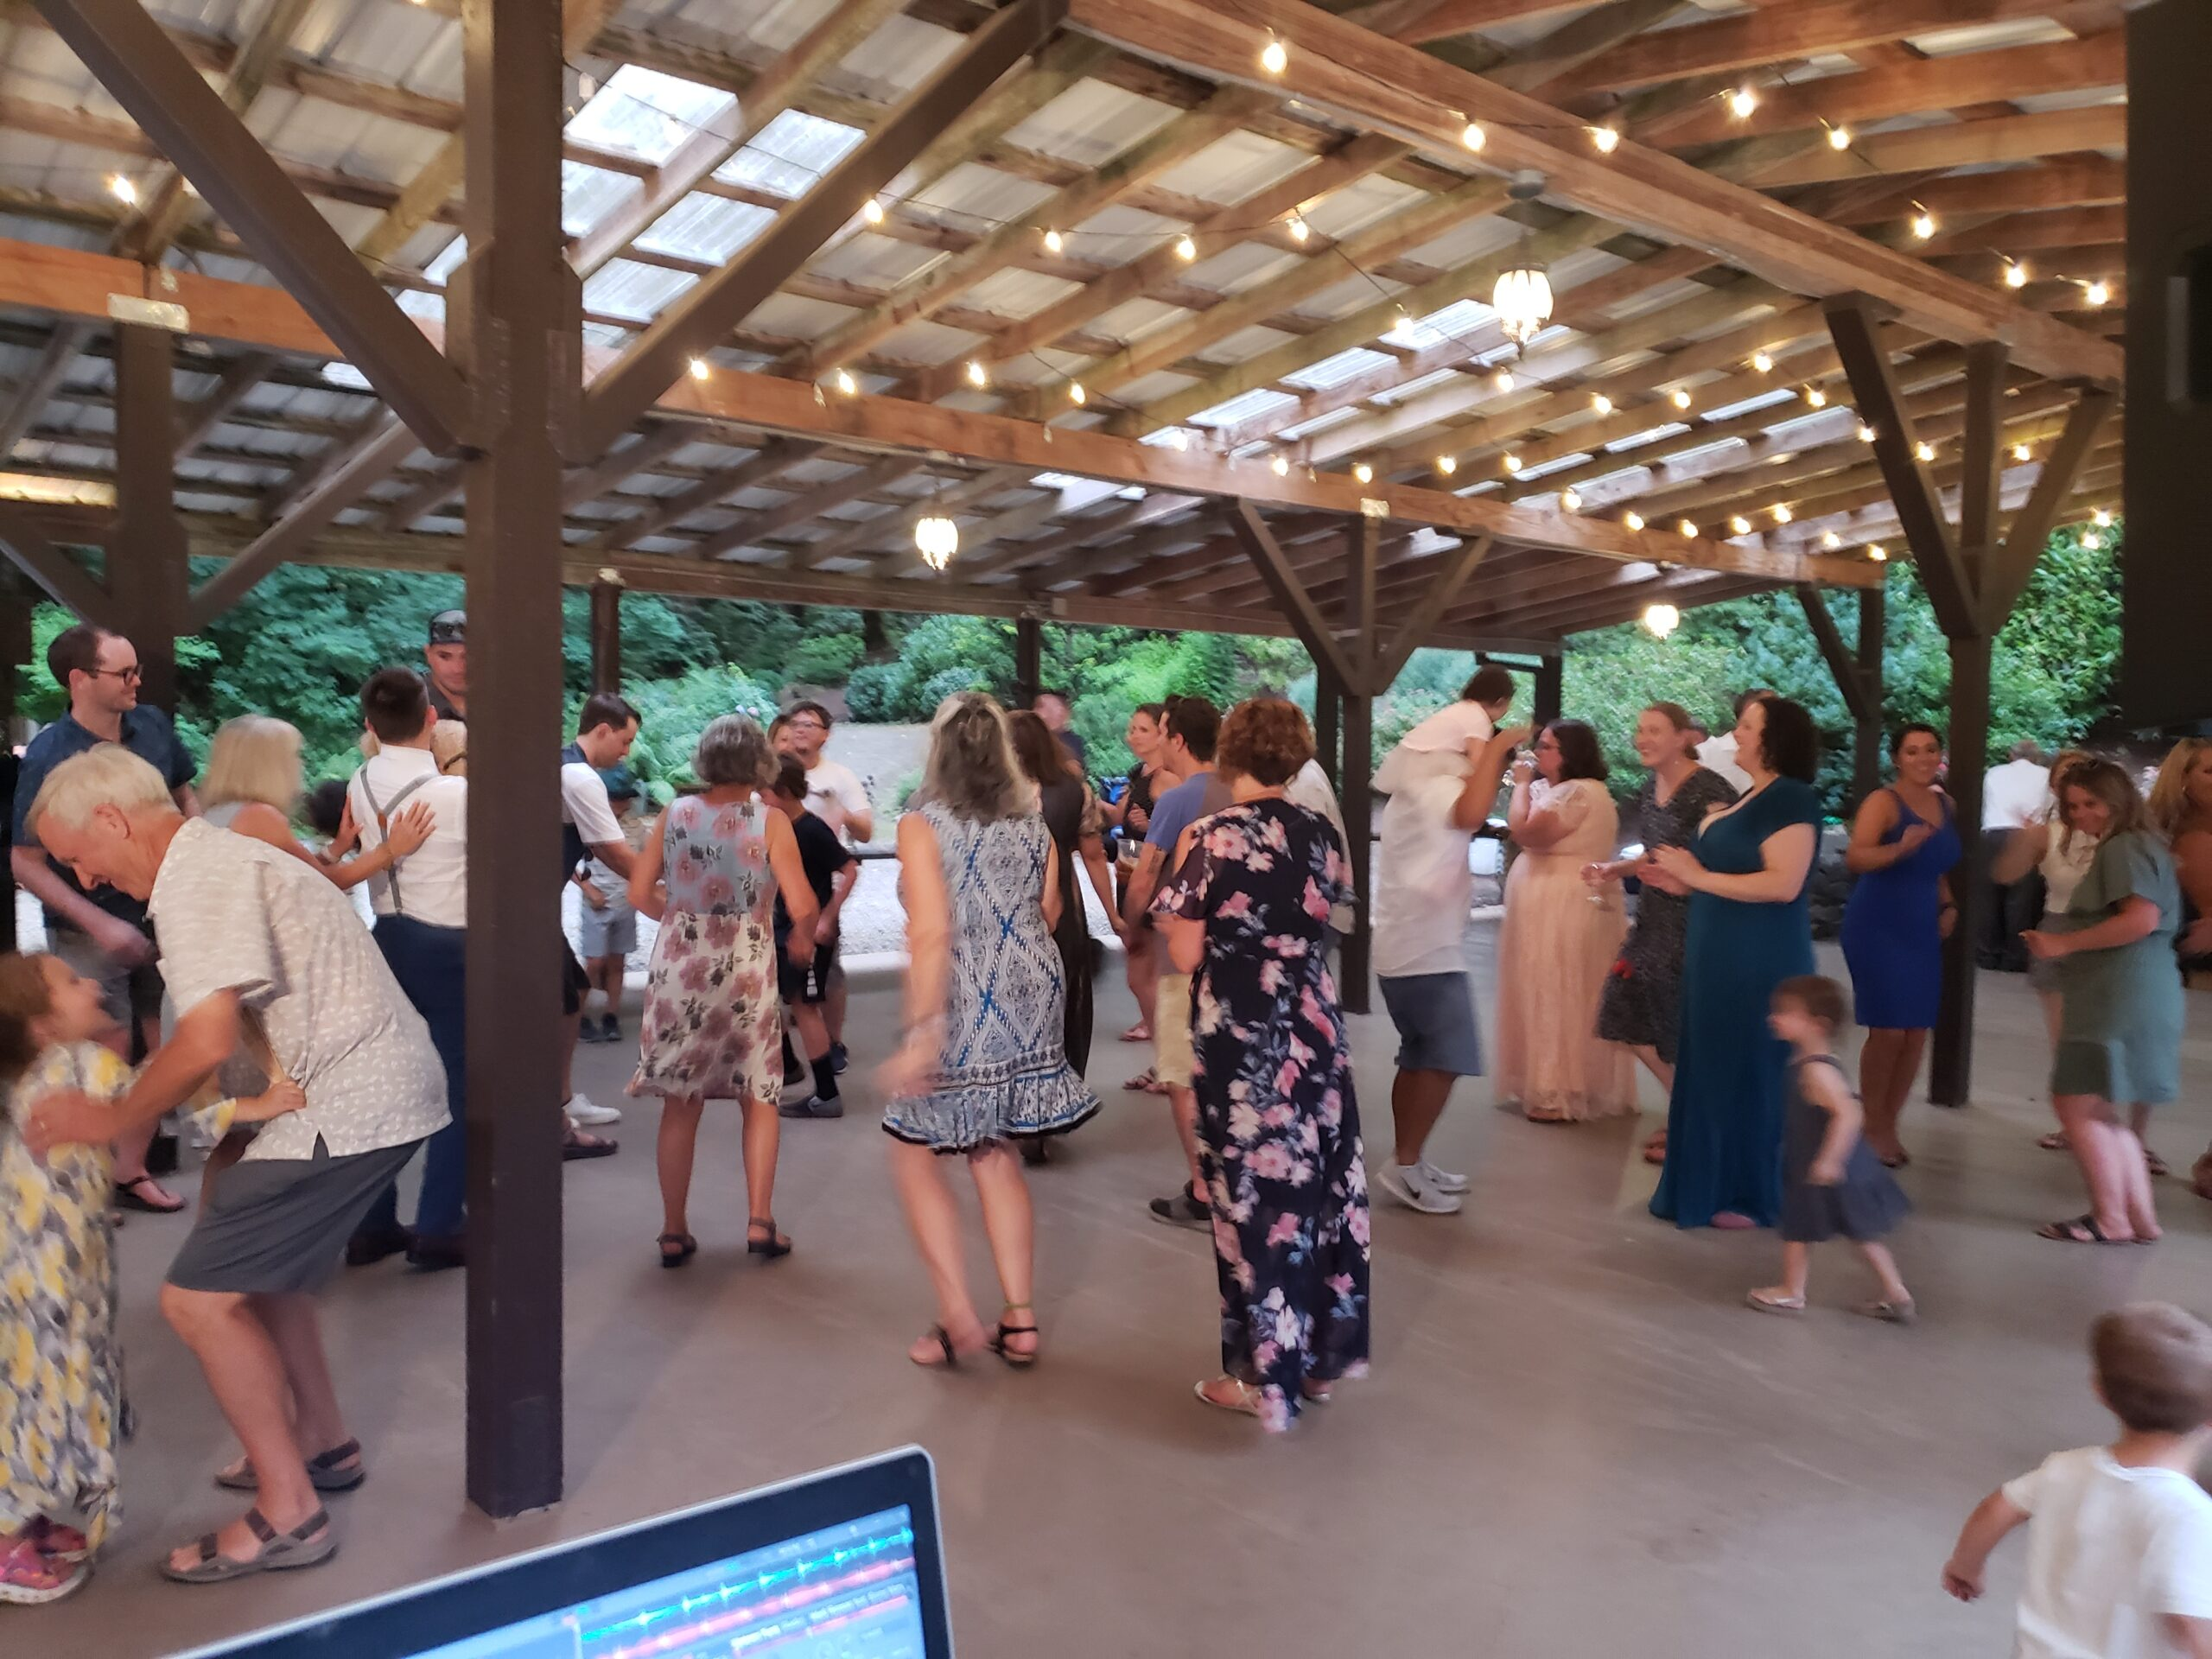 Horning's Hideout Wedding In North Plains (7-30-2021)